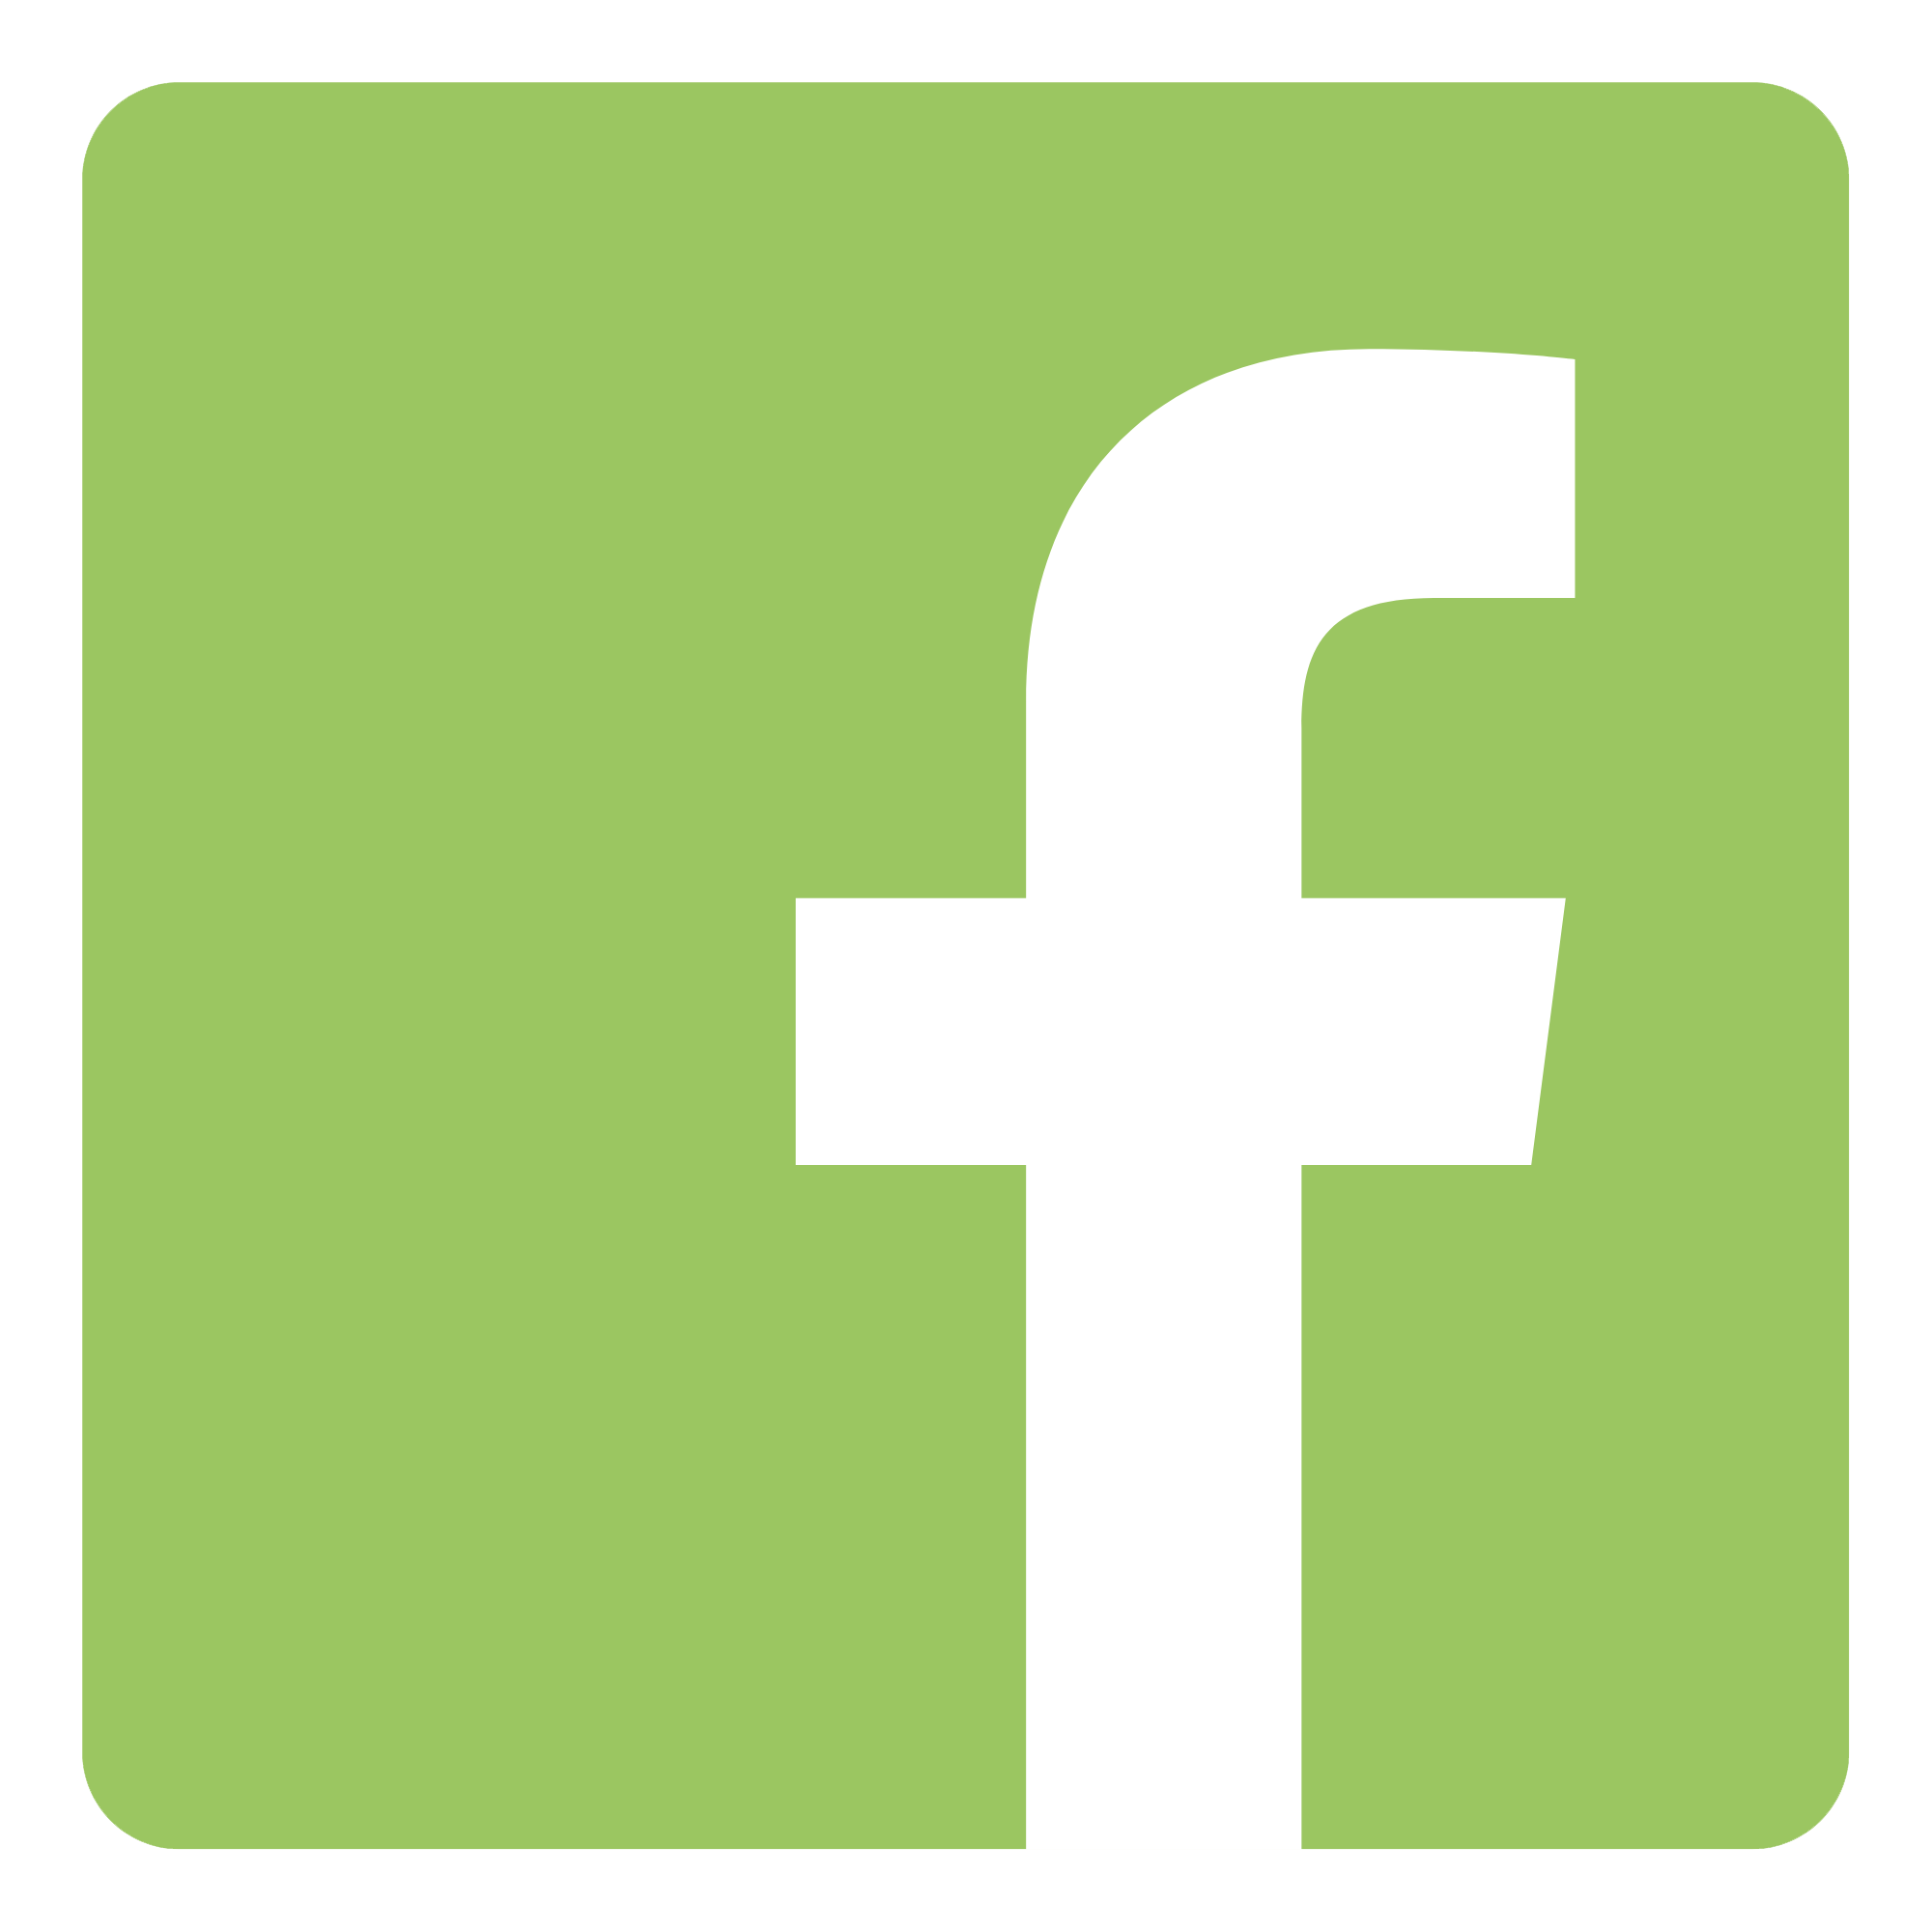 Icon facebook green